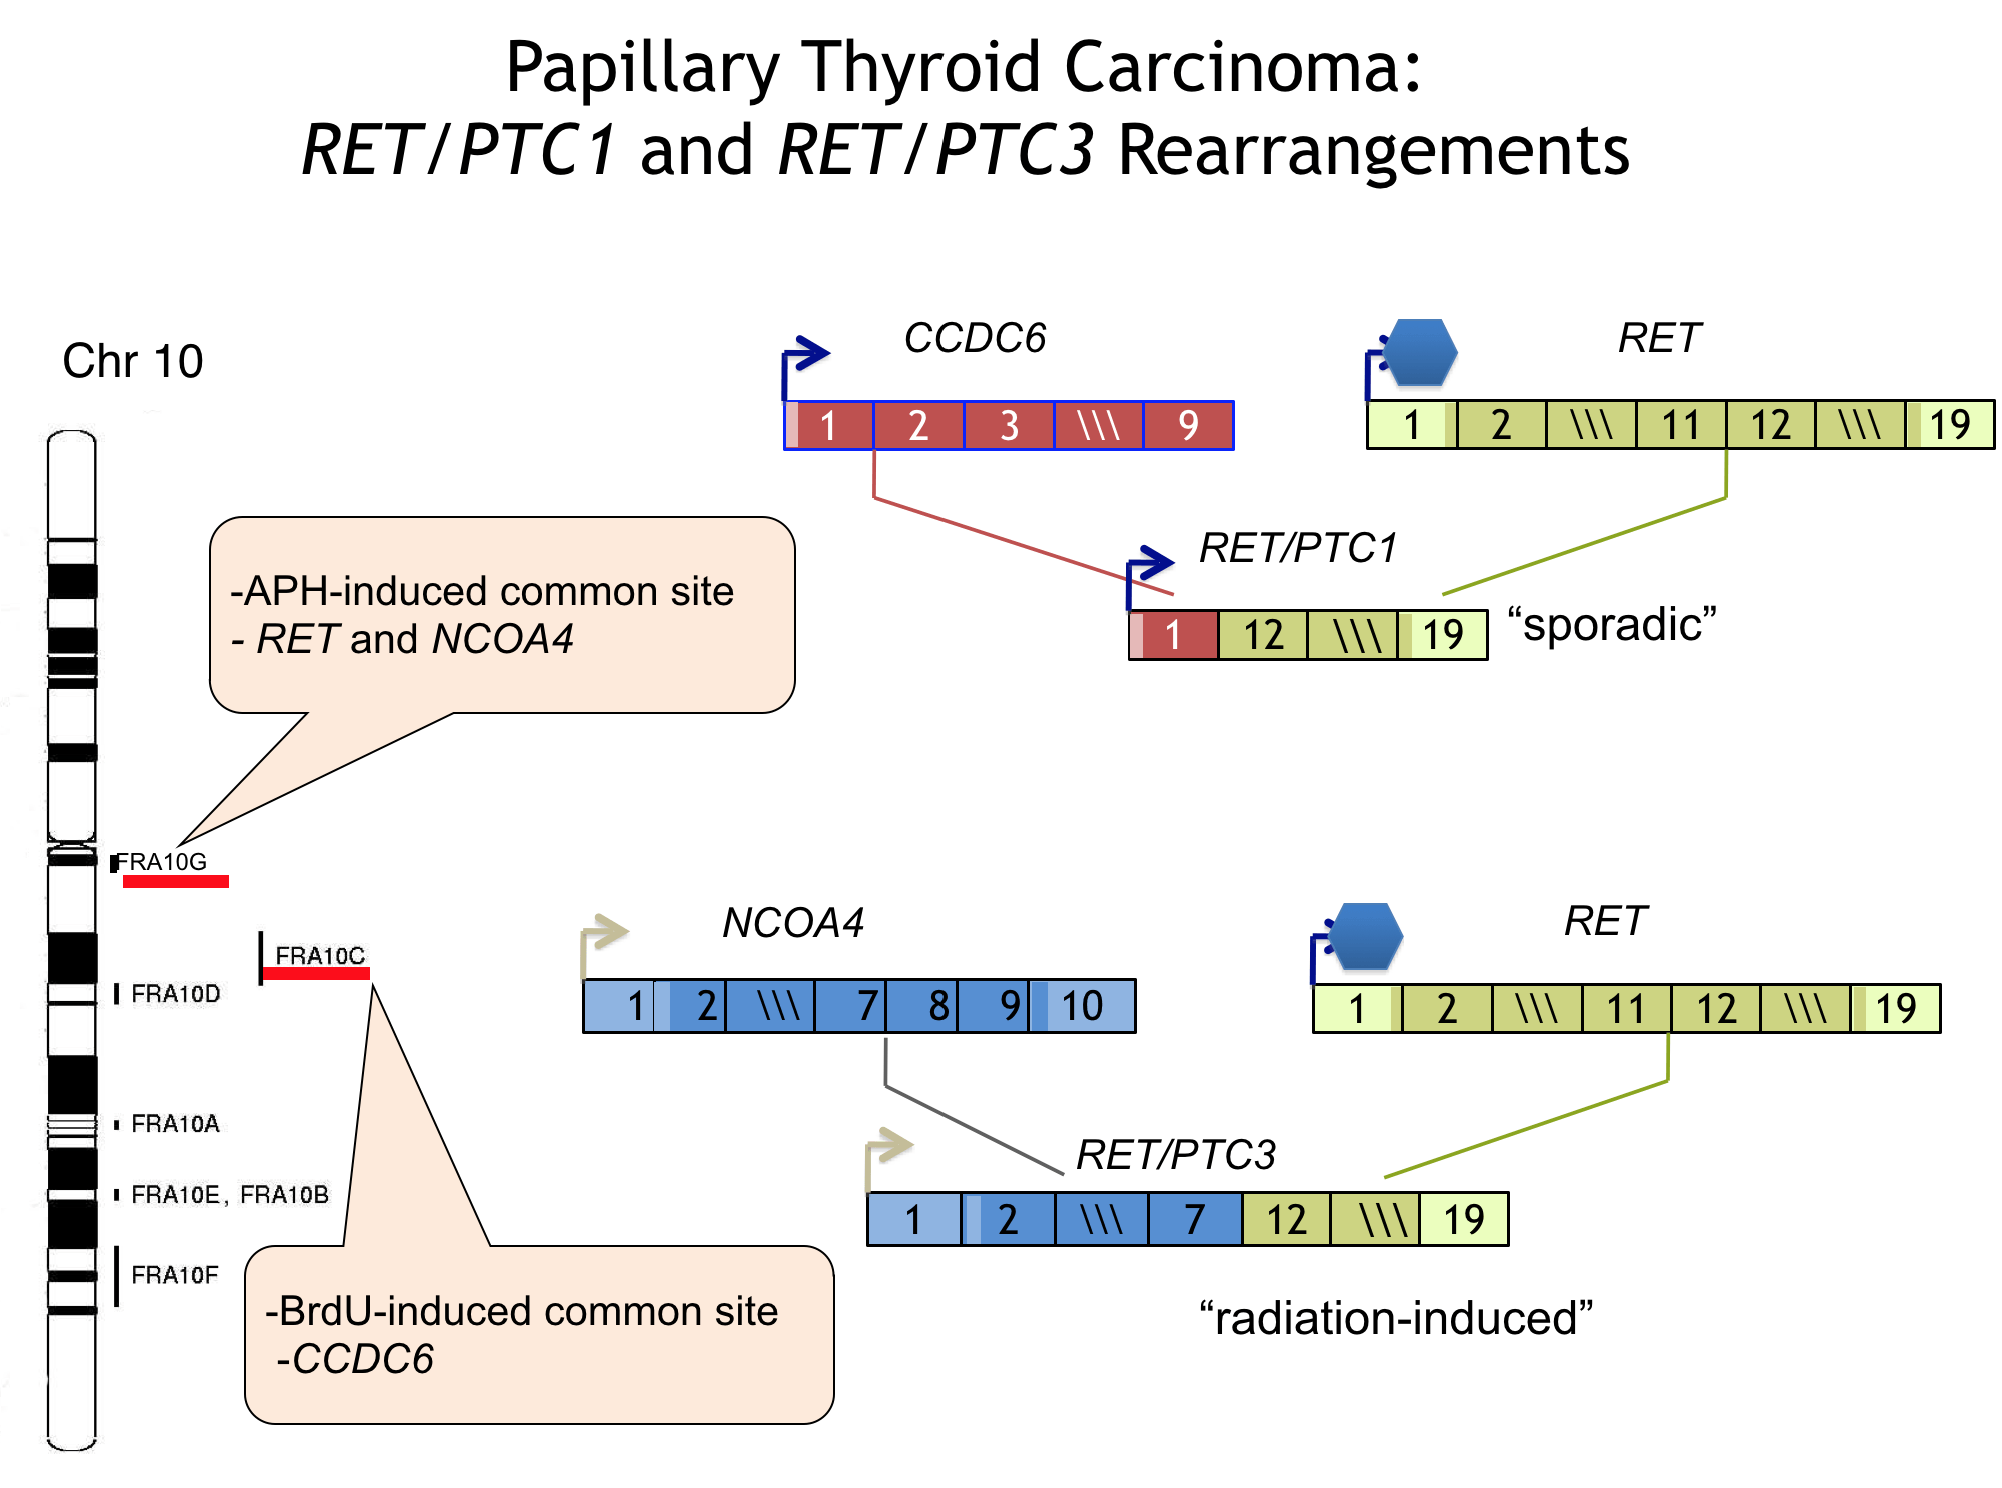 Diagram of papillary thyroid carcinoma rearrangements RET/PTC1 and RET/PTC3.